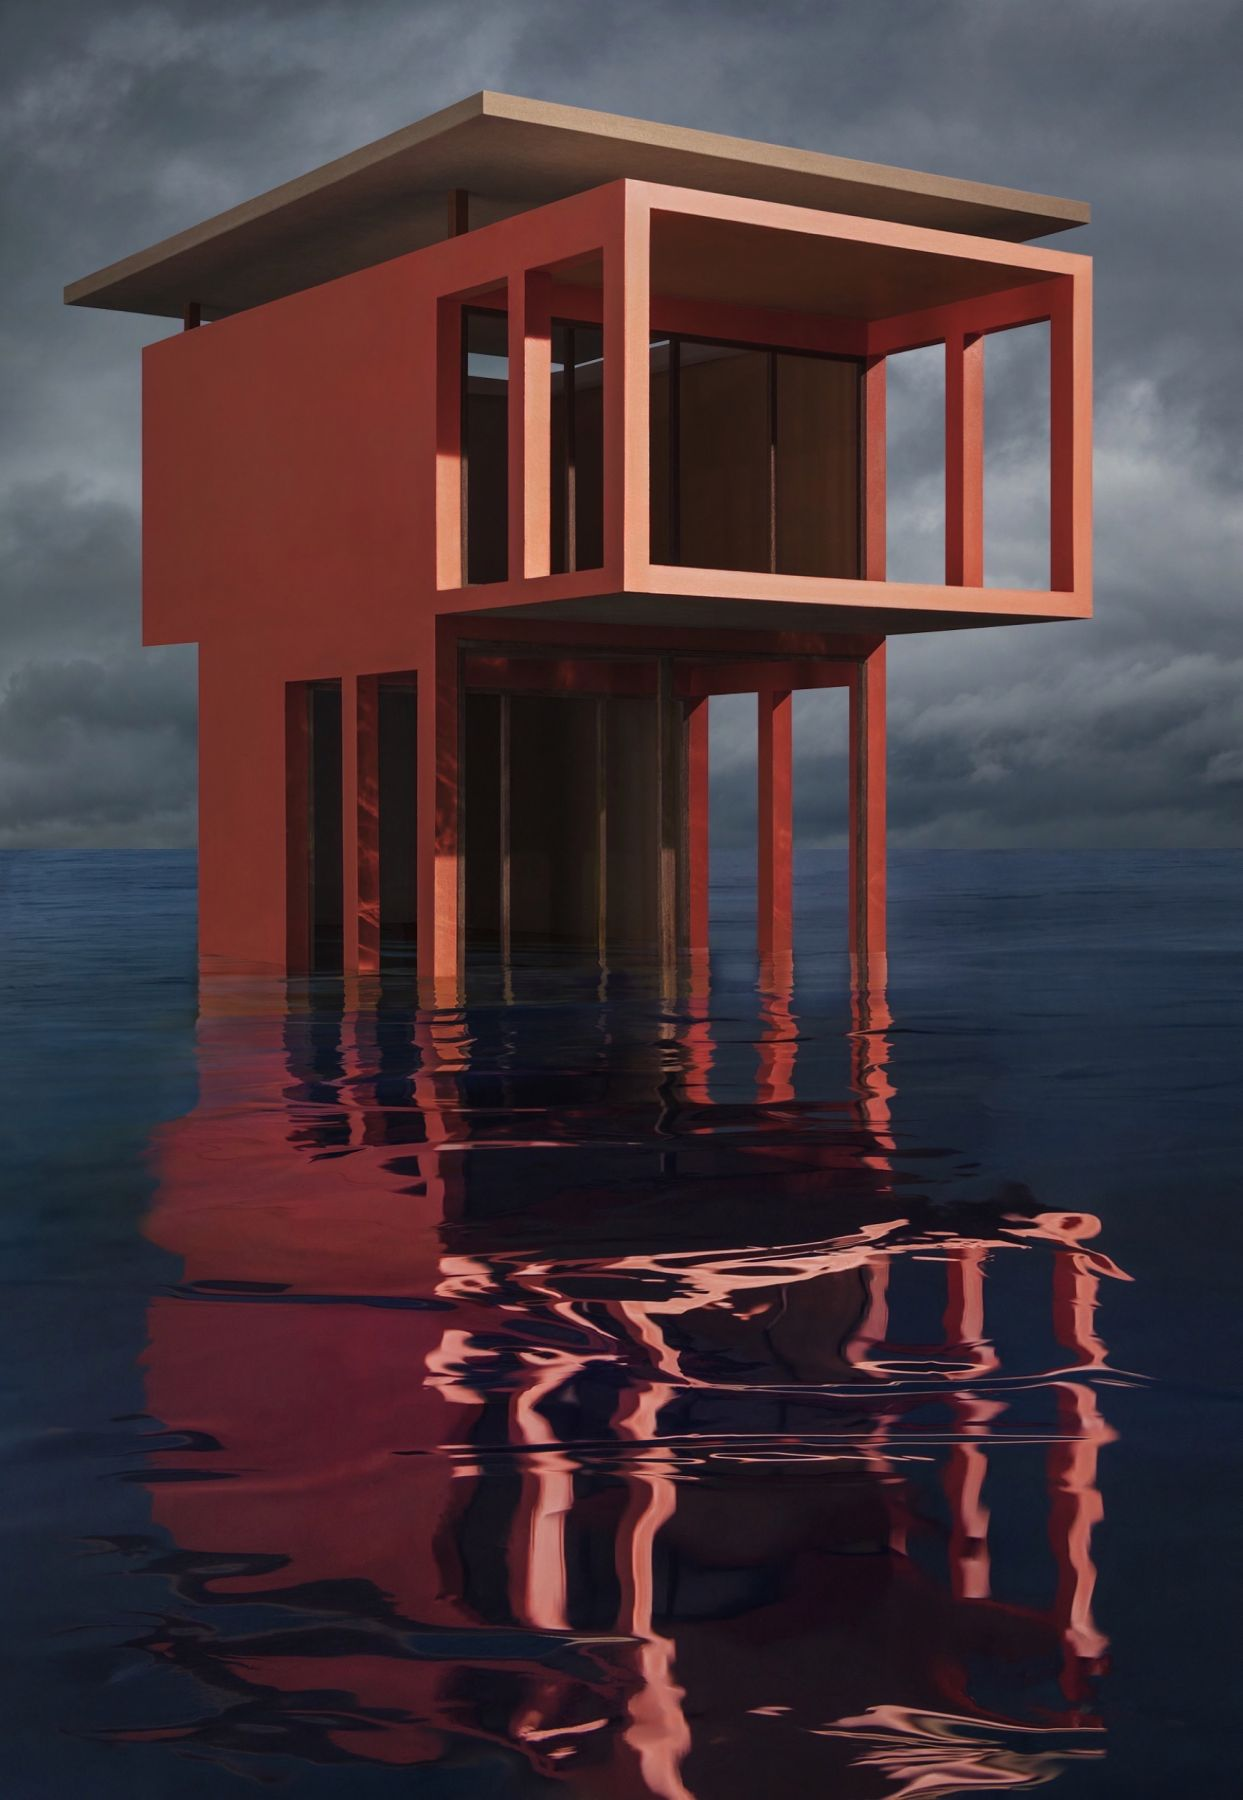 Red/Orange Solo Pavilion, 2018